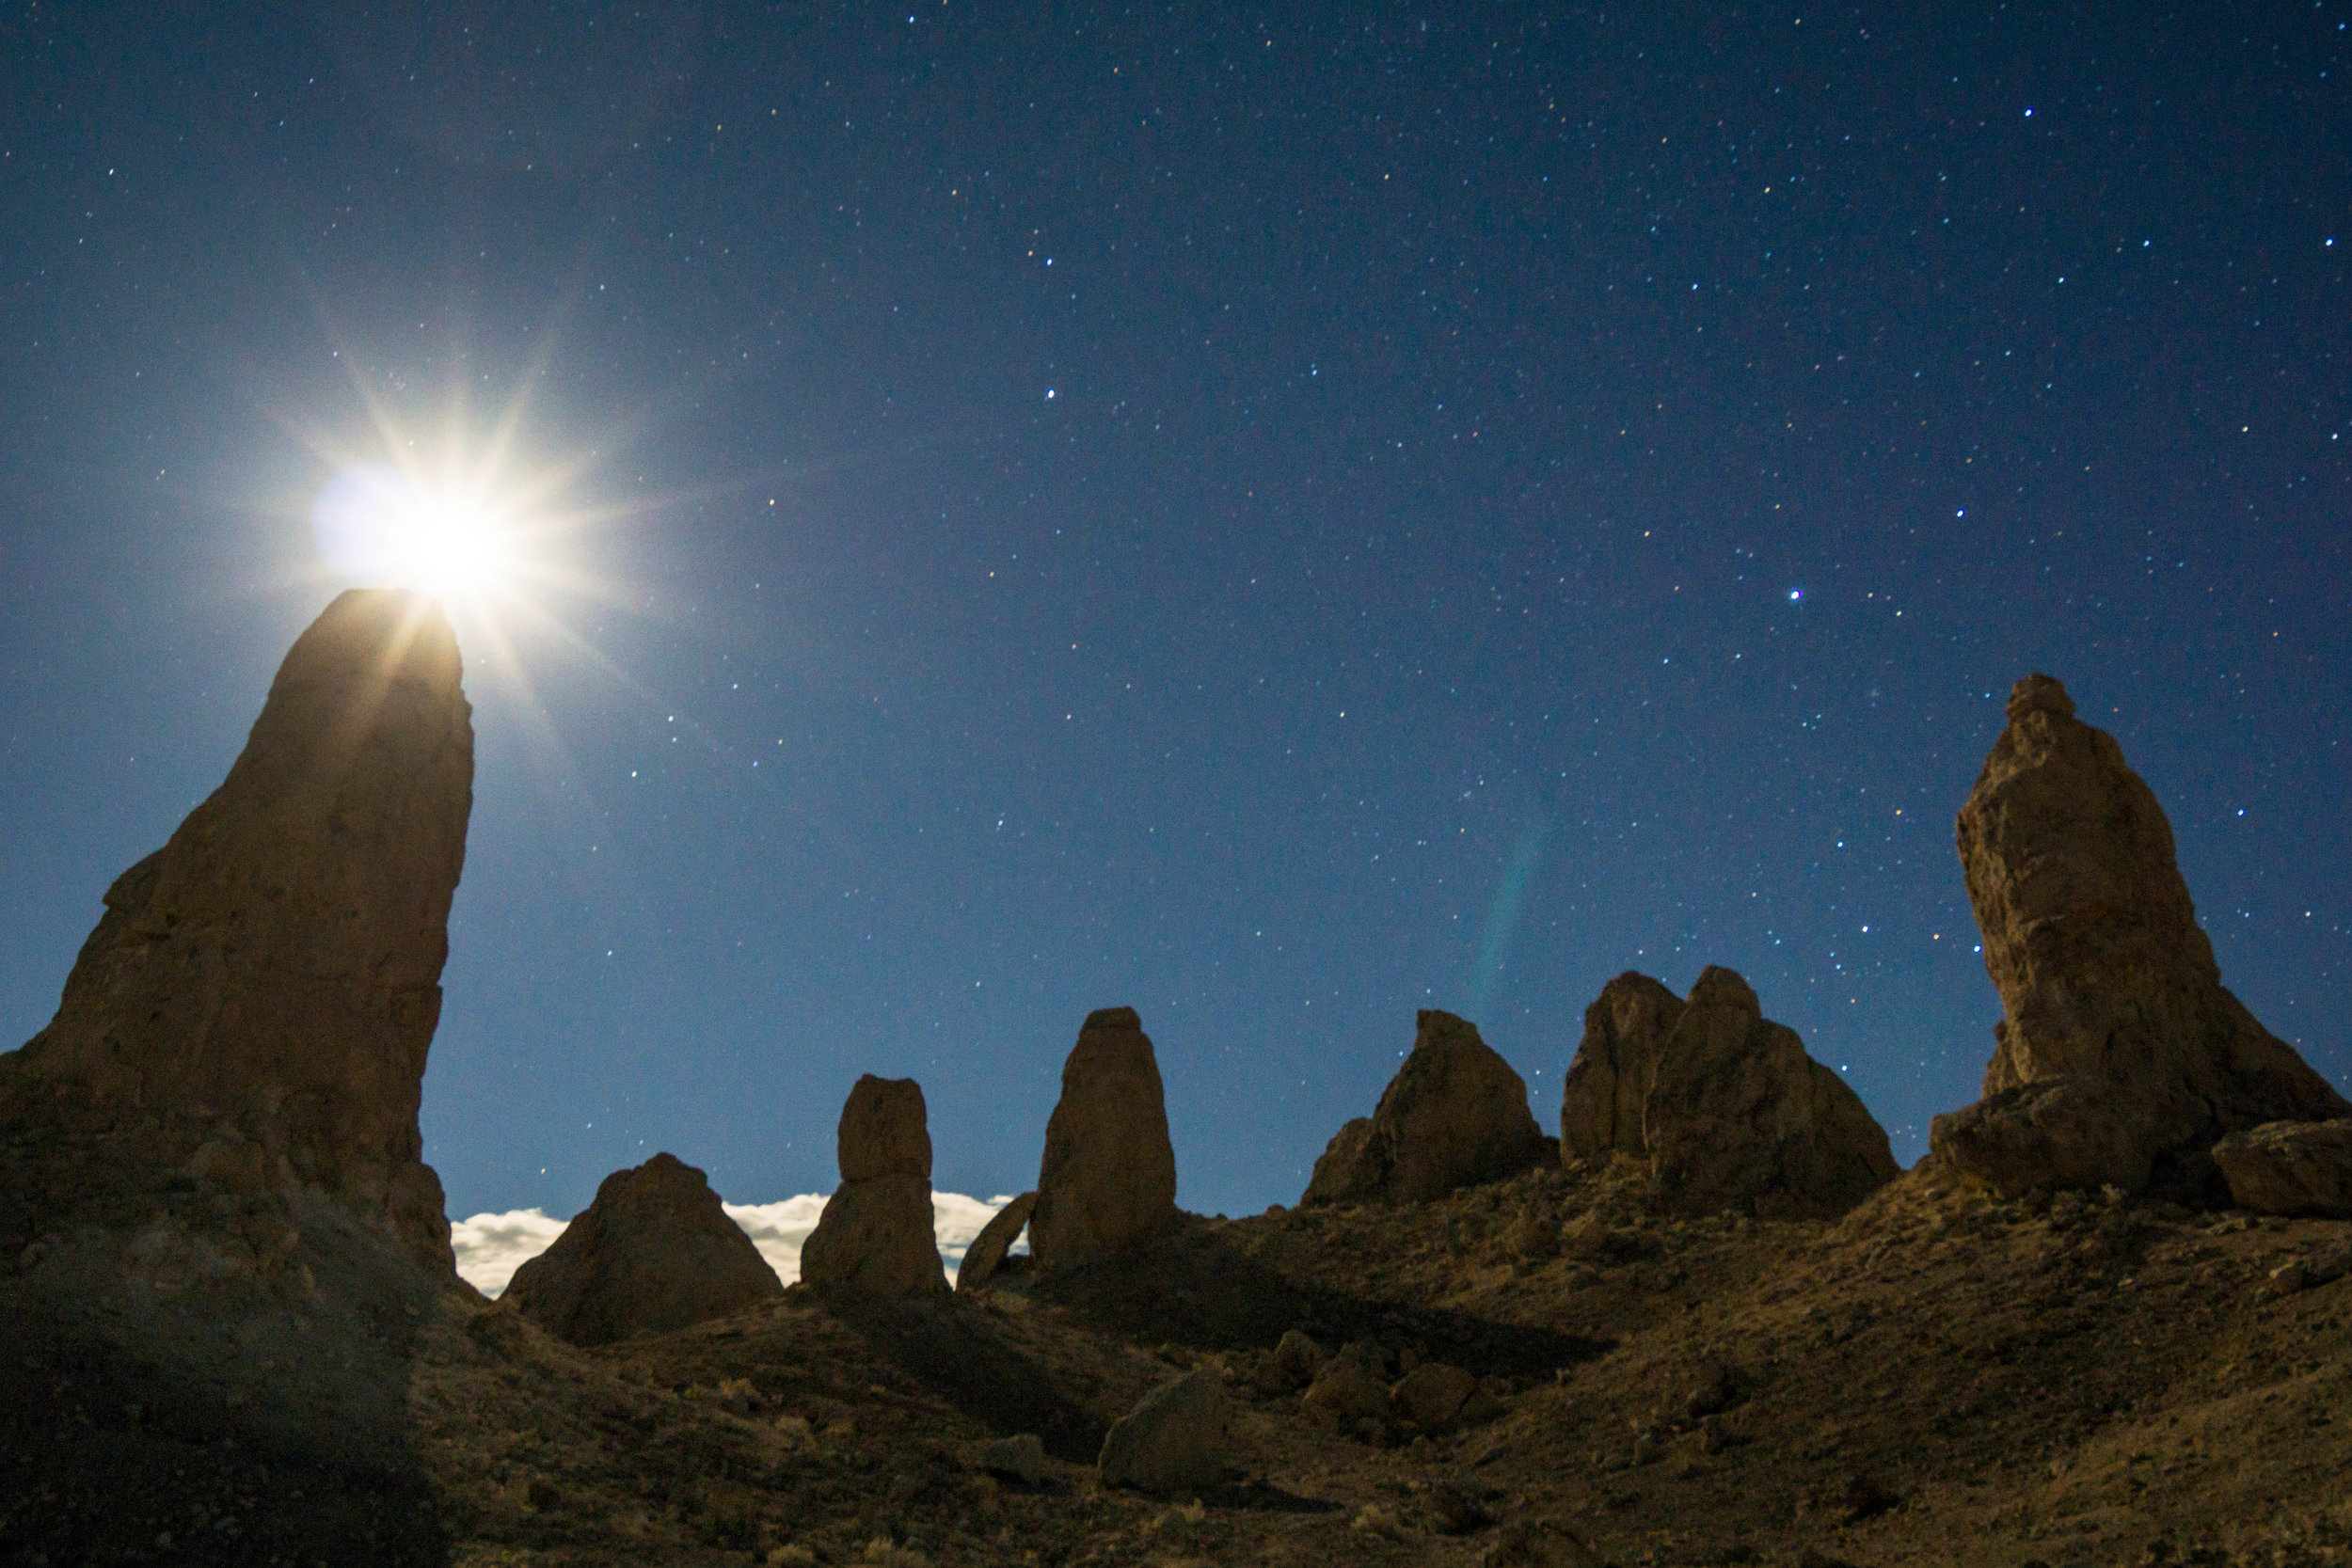 After struggling to set up camp in an unrelenting wind, we embark on a hike under the moonlight through an array of pinnacles formed beneath an ancient inland sea.